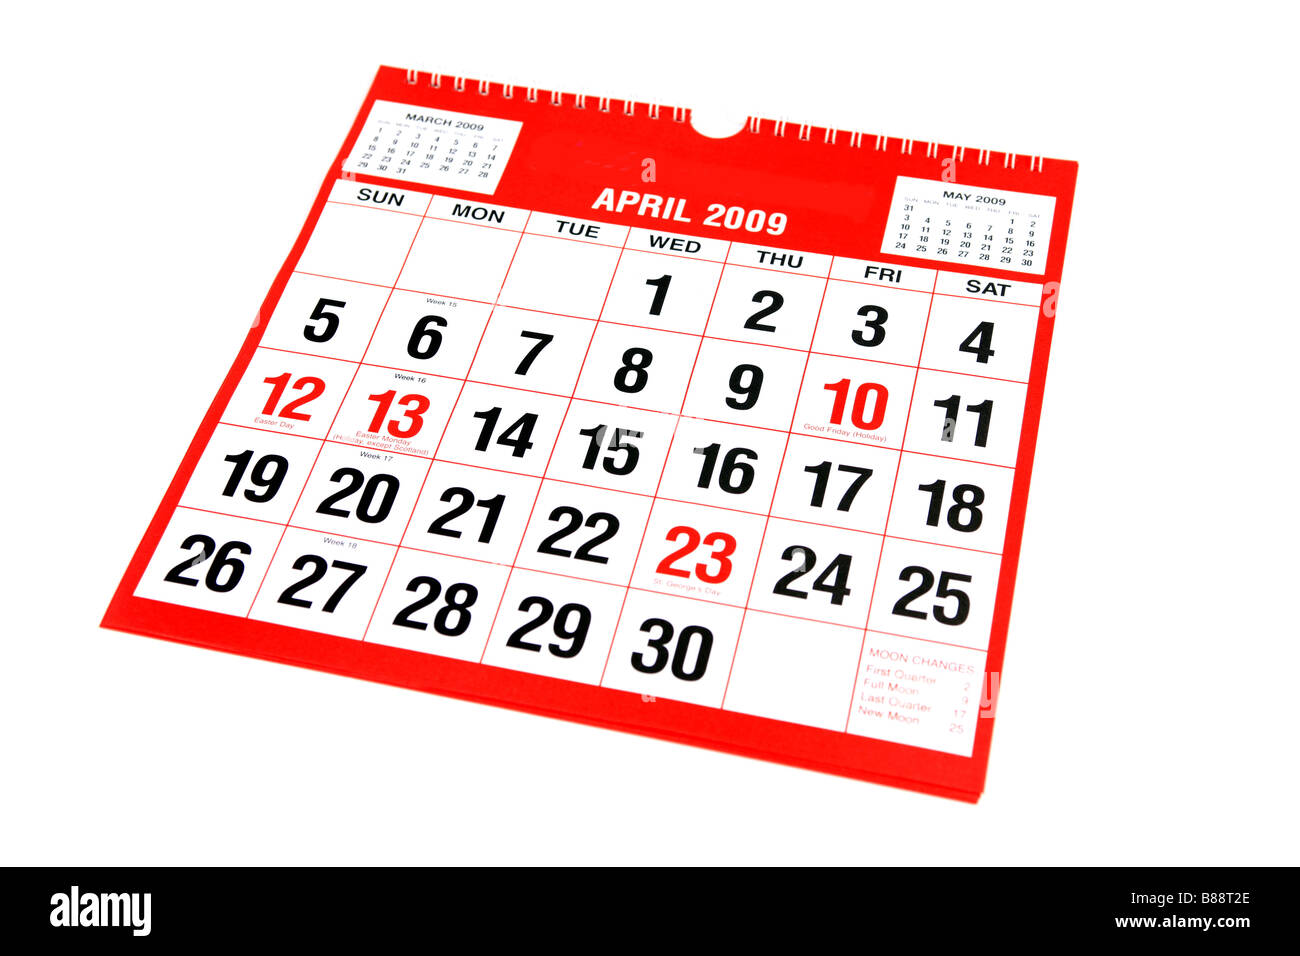 A calendar page with April on view - Stock Image